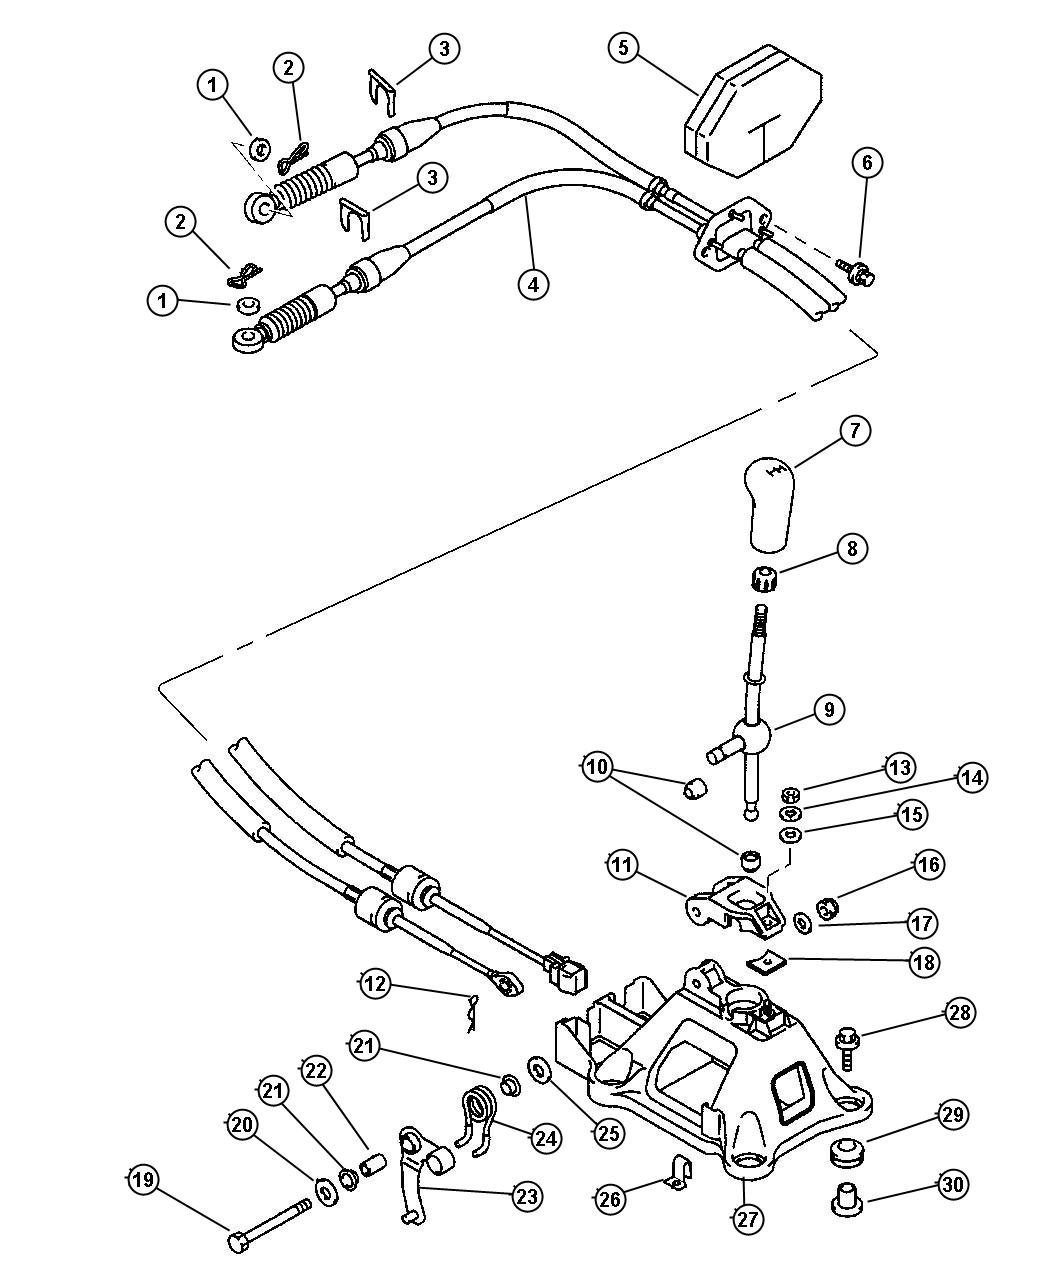 2005 Cadillac Xlr Wiring Harness in addition Chrysler 2 7 Engine Diagram Oil Pressure Switch further Chrysler C Member Radiator 4814975ag in addition Chrysler 2 7 Engine Diagram Oil Pressure Switch furthermore Cadillac Srx Mk1 First Generation 2004 2006 Fuse Box Diagram. on 2005 chrysler sebring convertible battery